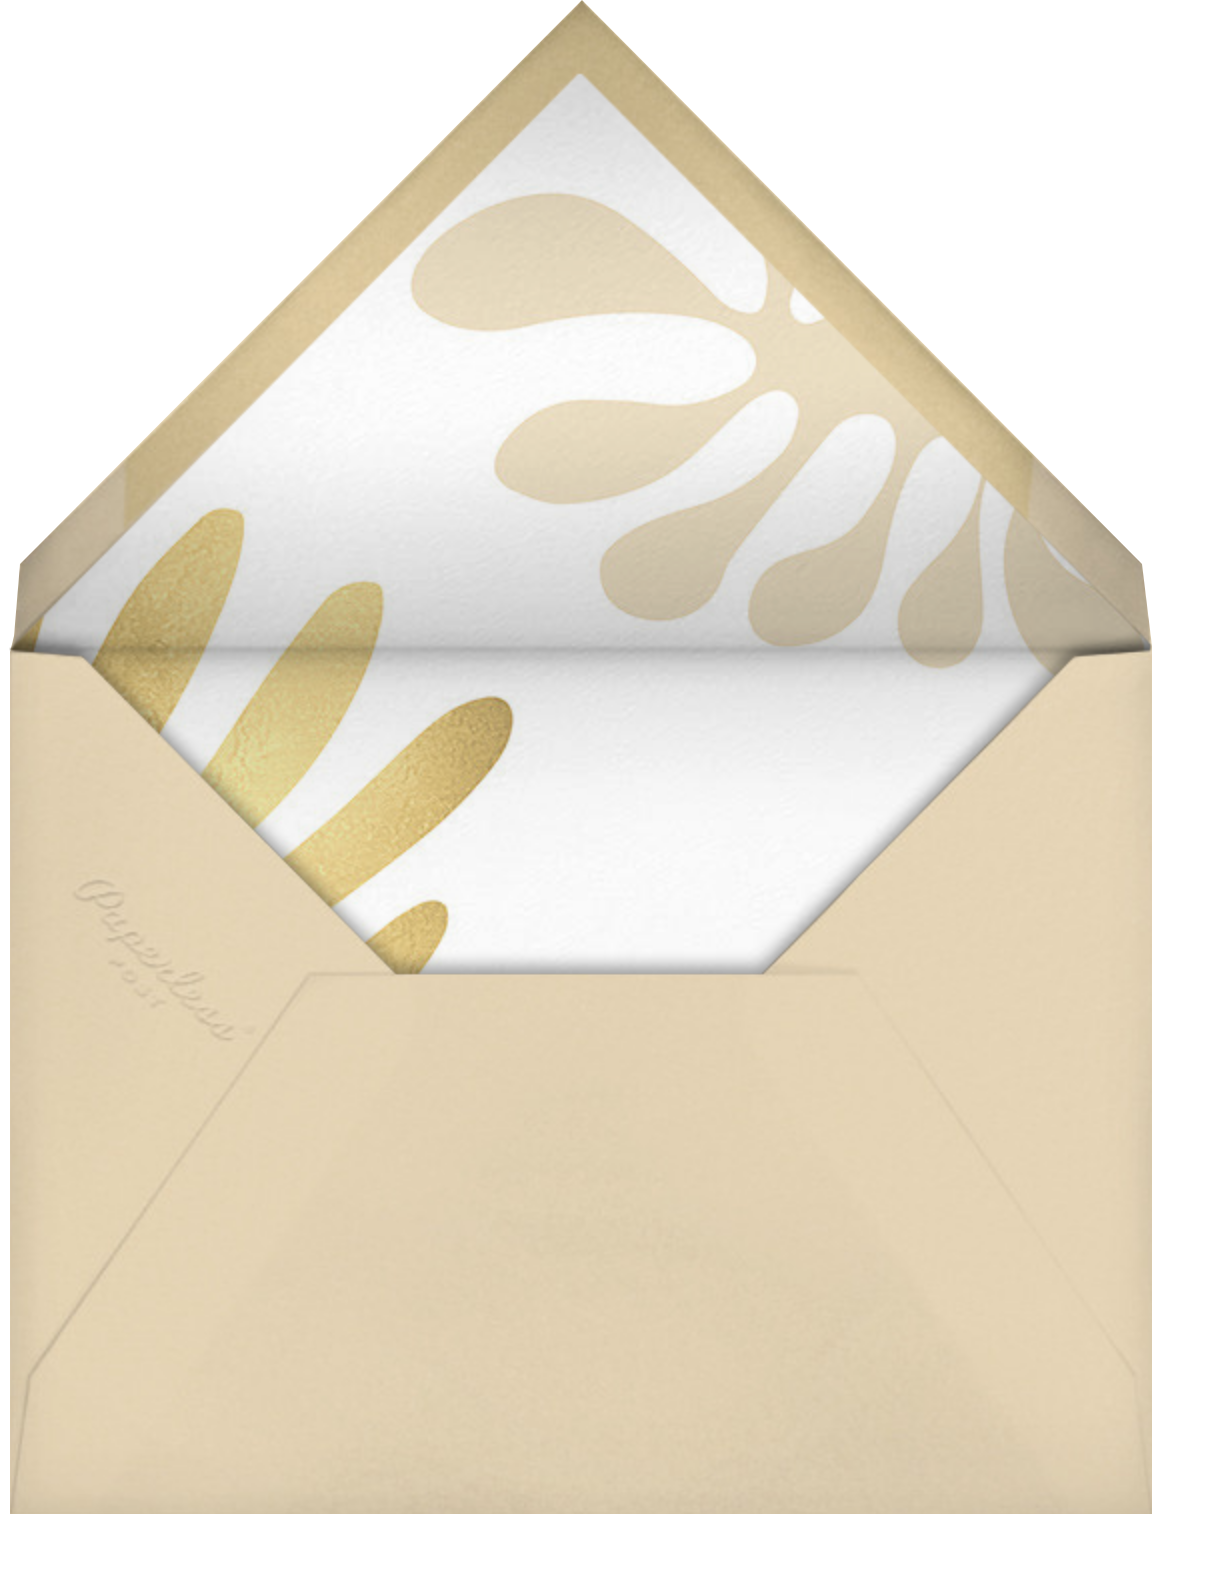 Fauves D'Or (Invitation) - Paperless Post - All - envelope back